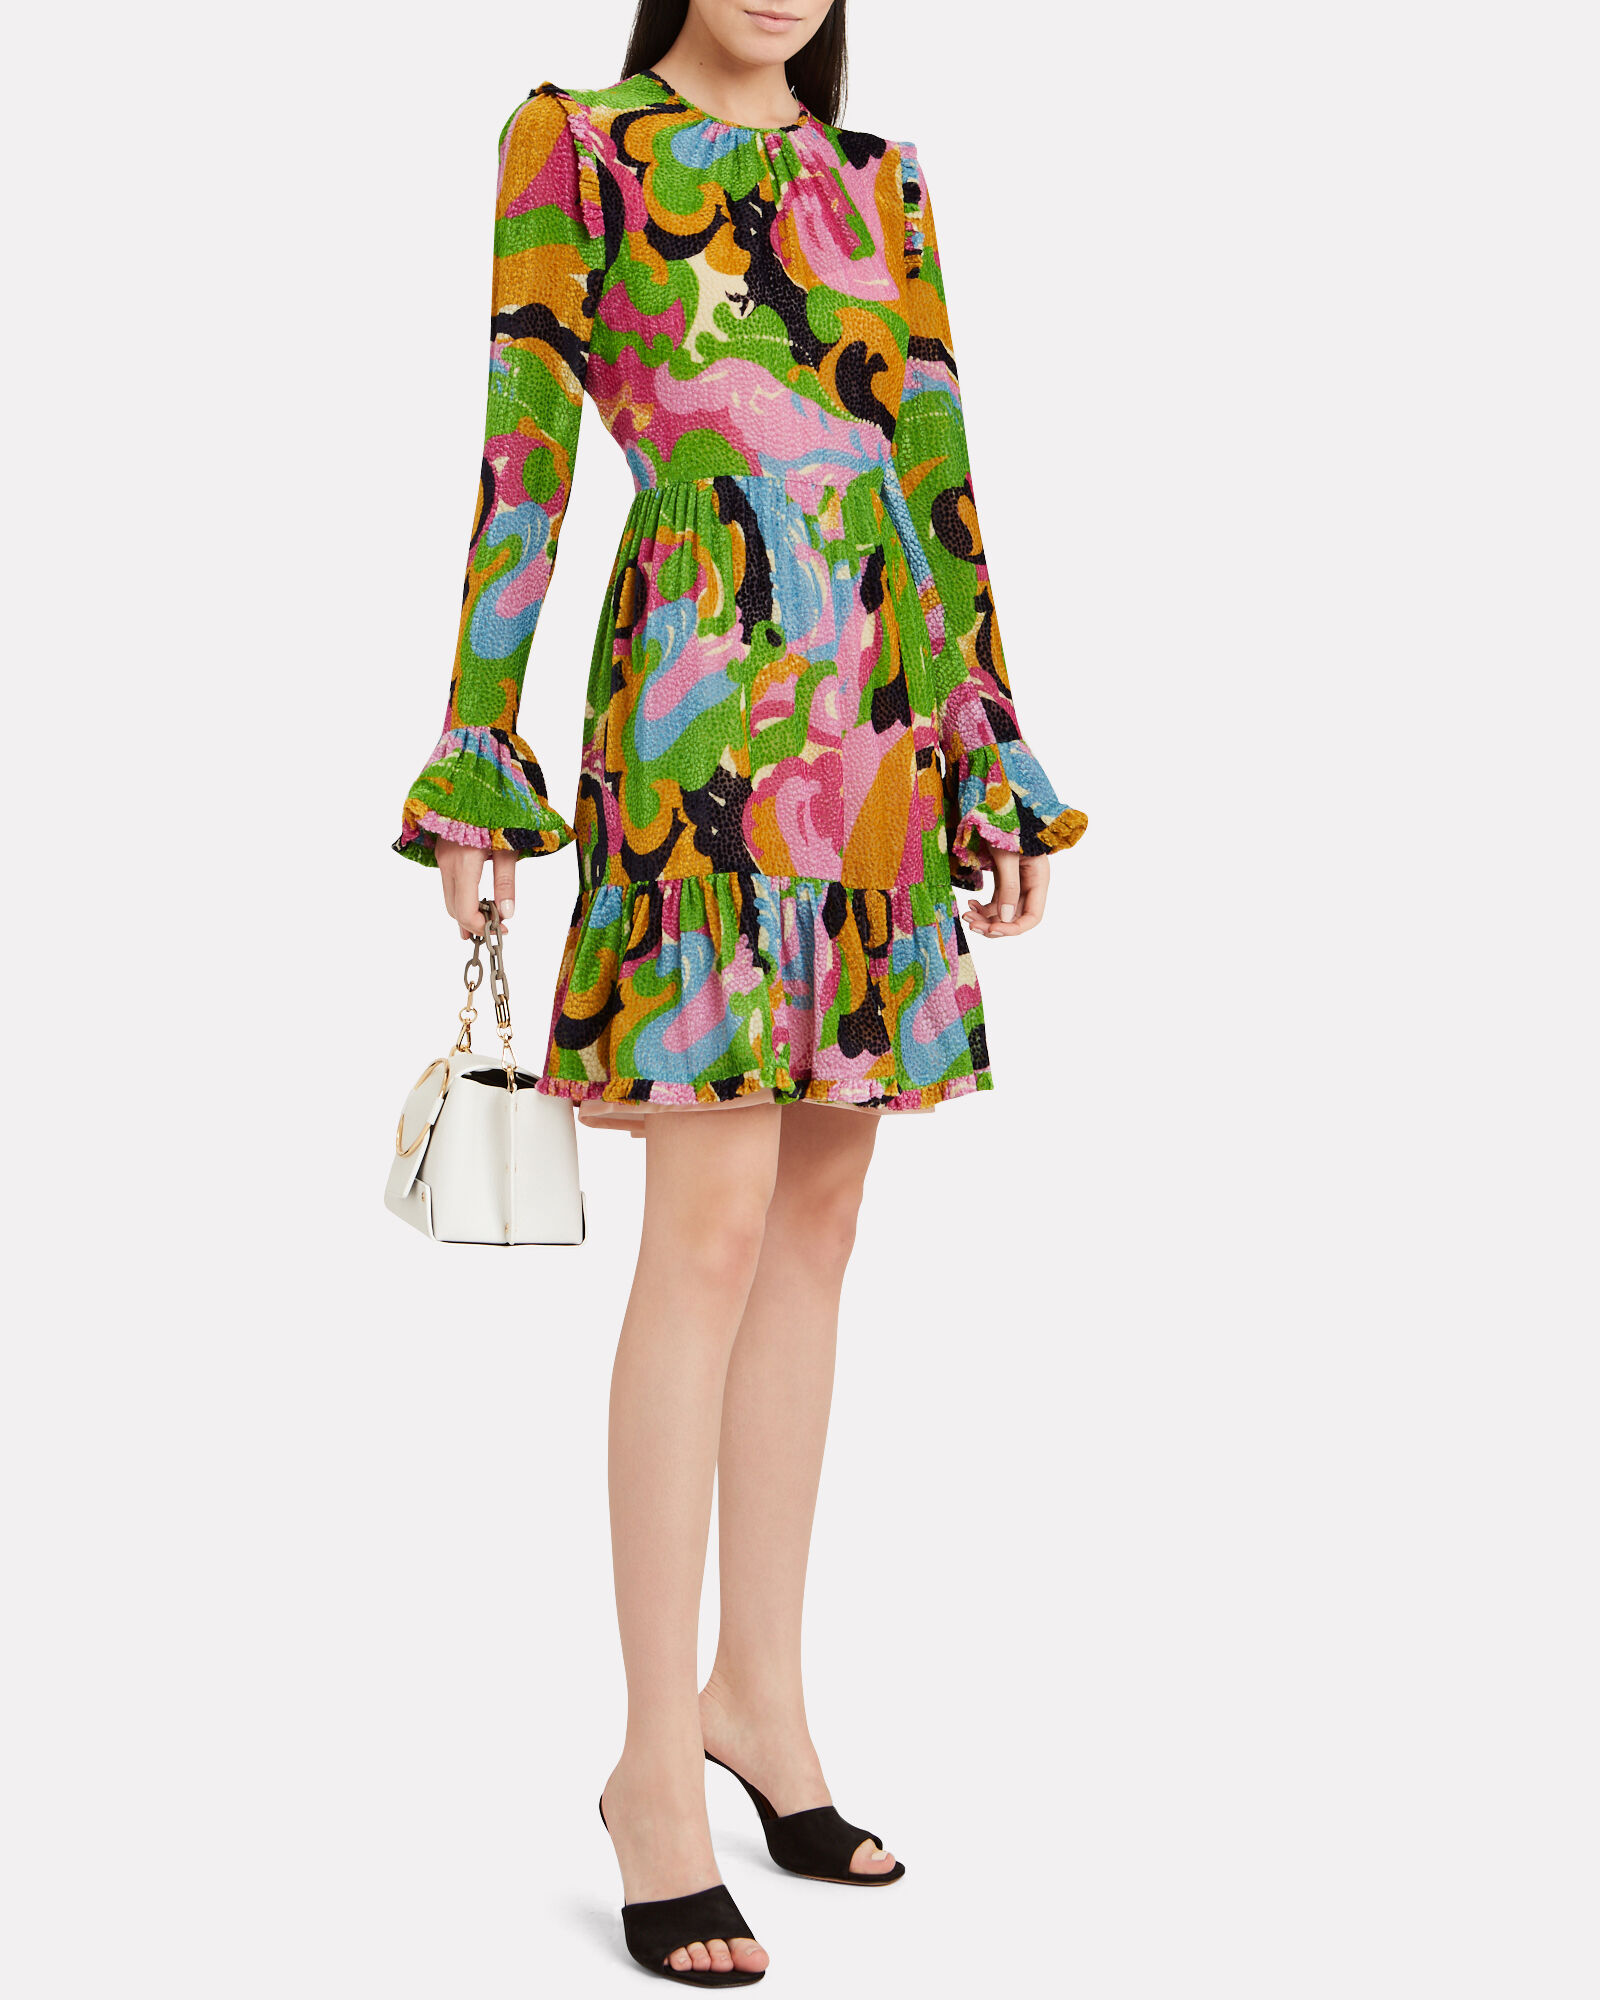 Visconti Mini Dress, GREEN/PINK ABSTRACT, hi-res